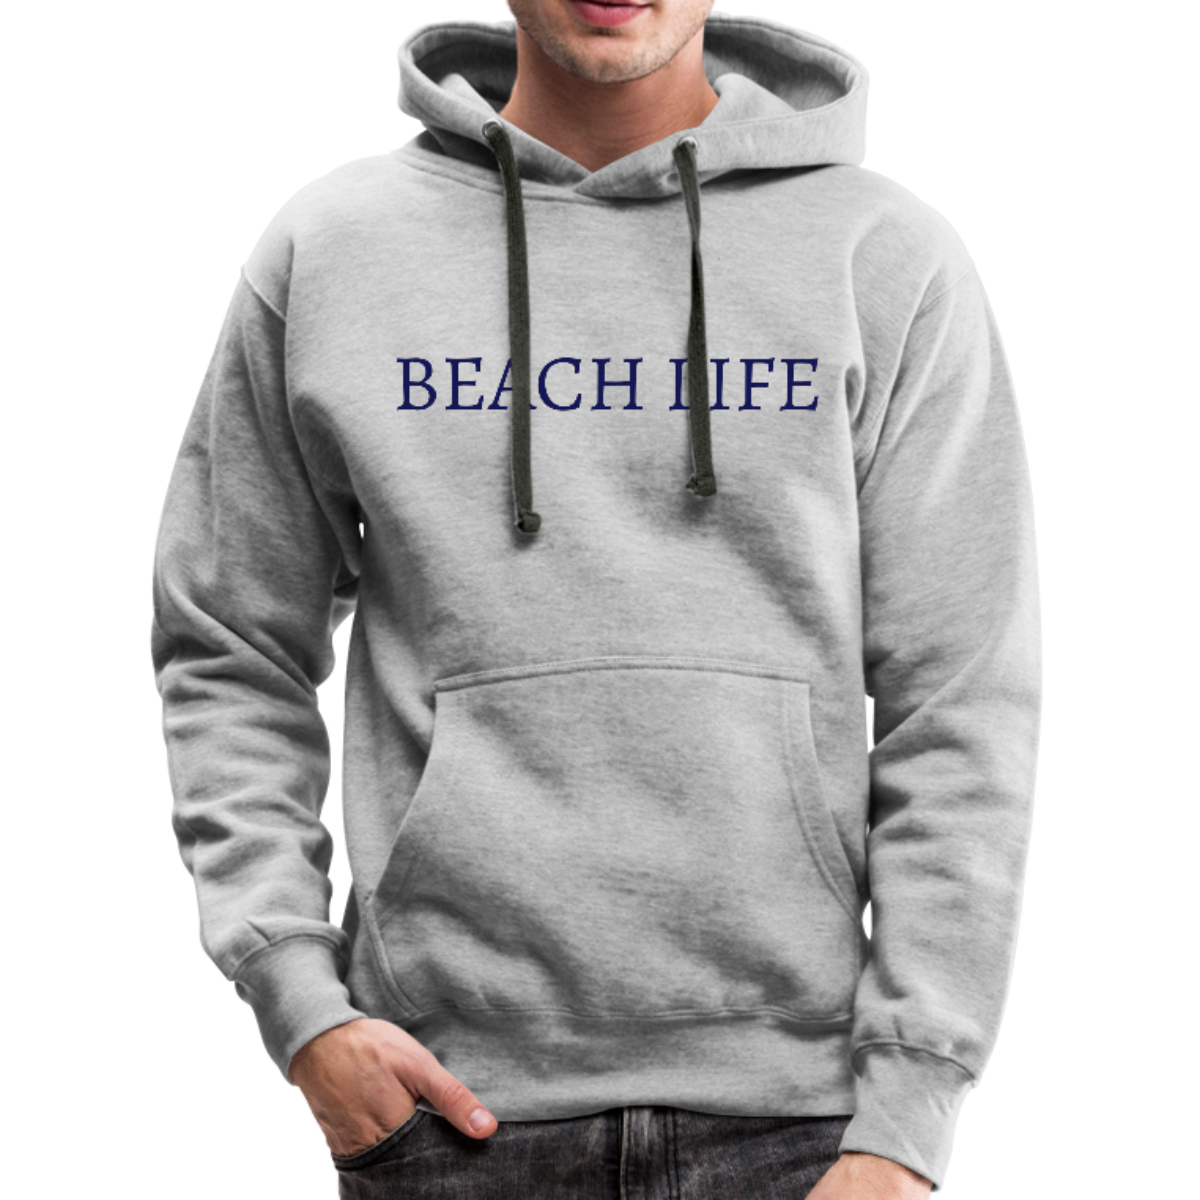 Beach Life-Make Waves 2-sided Men's Hoodie